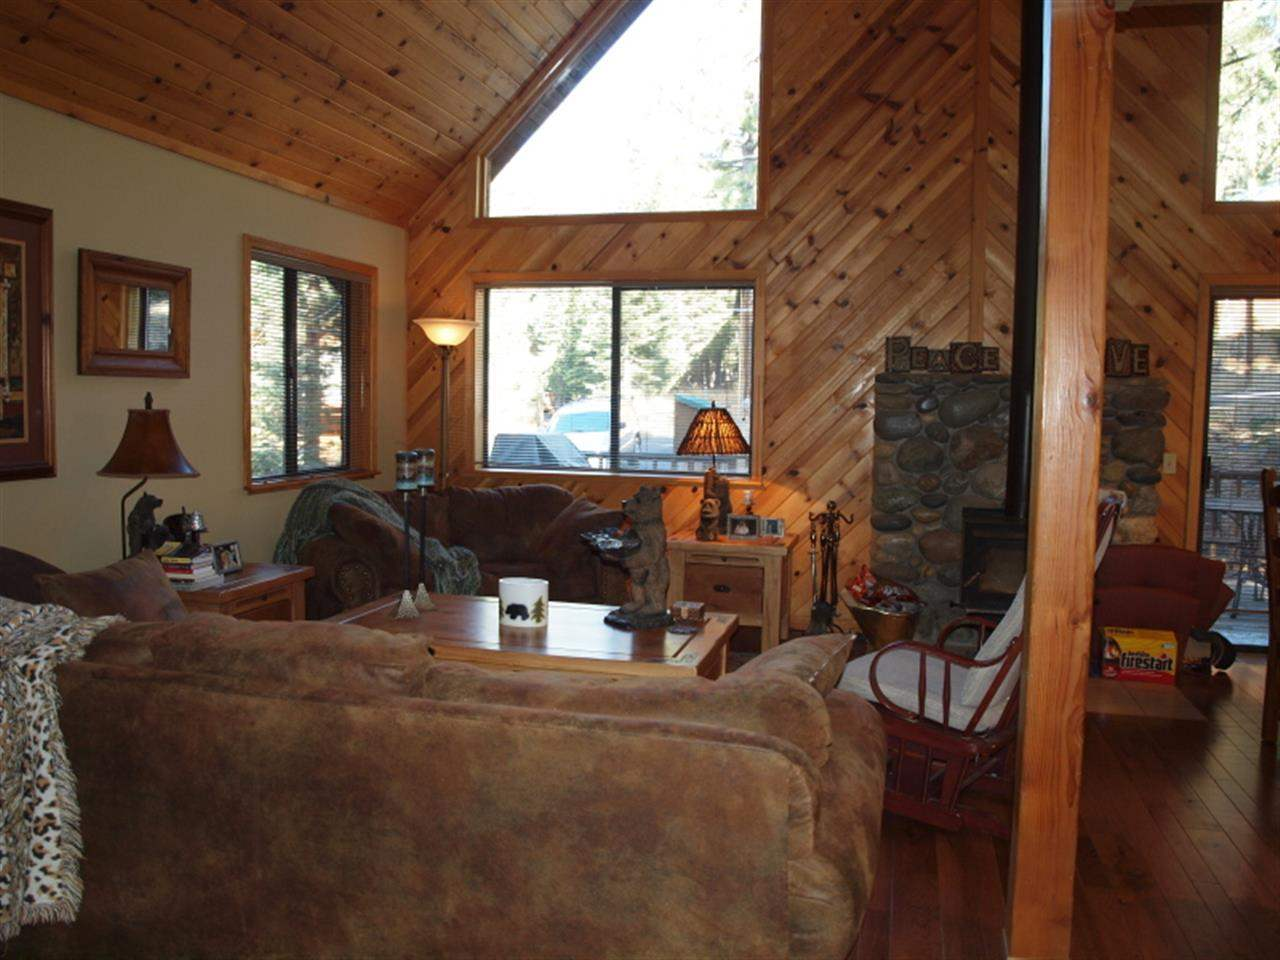 Additional photo for property listing at 12352 Saint Bernard Drive  Truckee, California 96161 United States